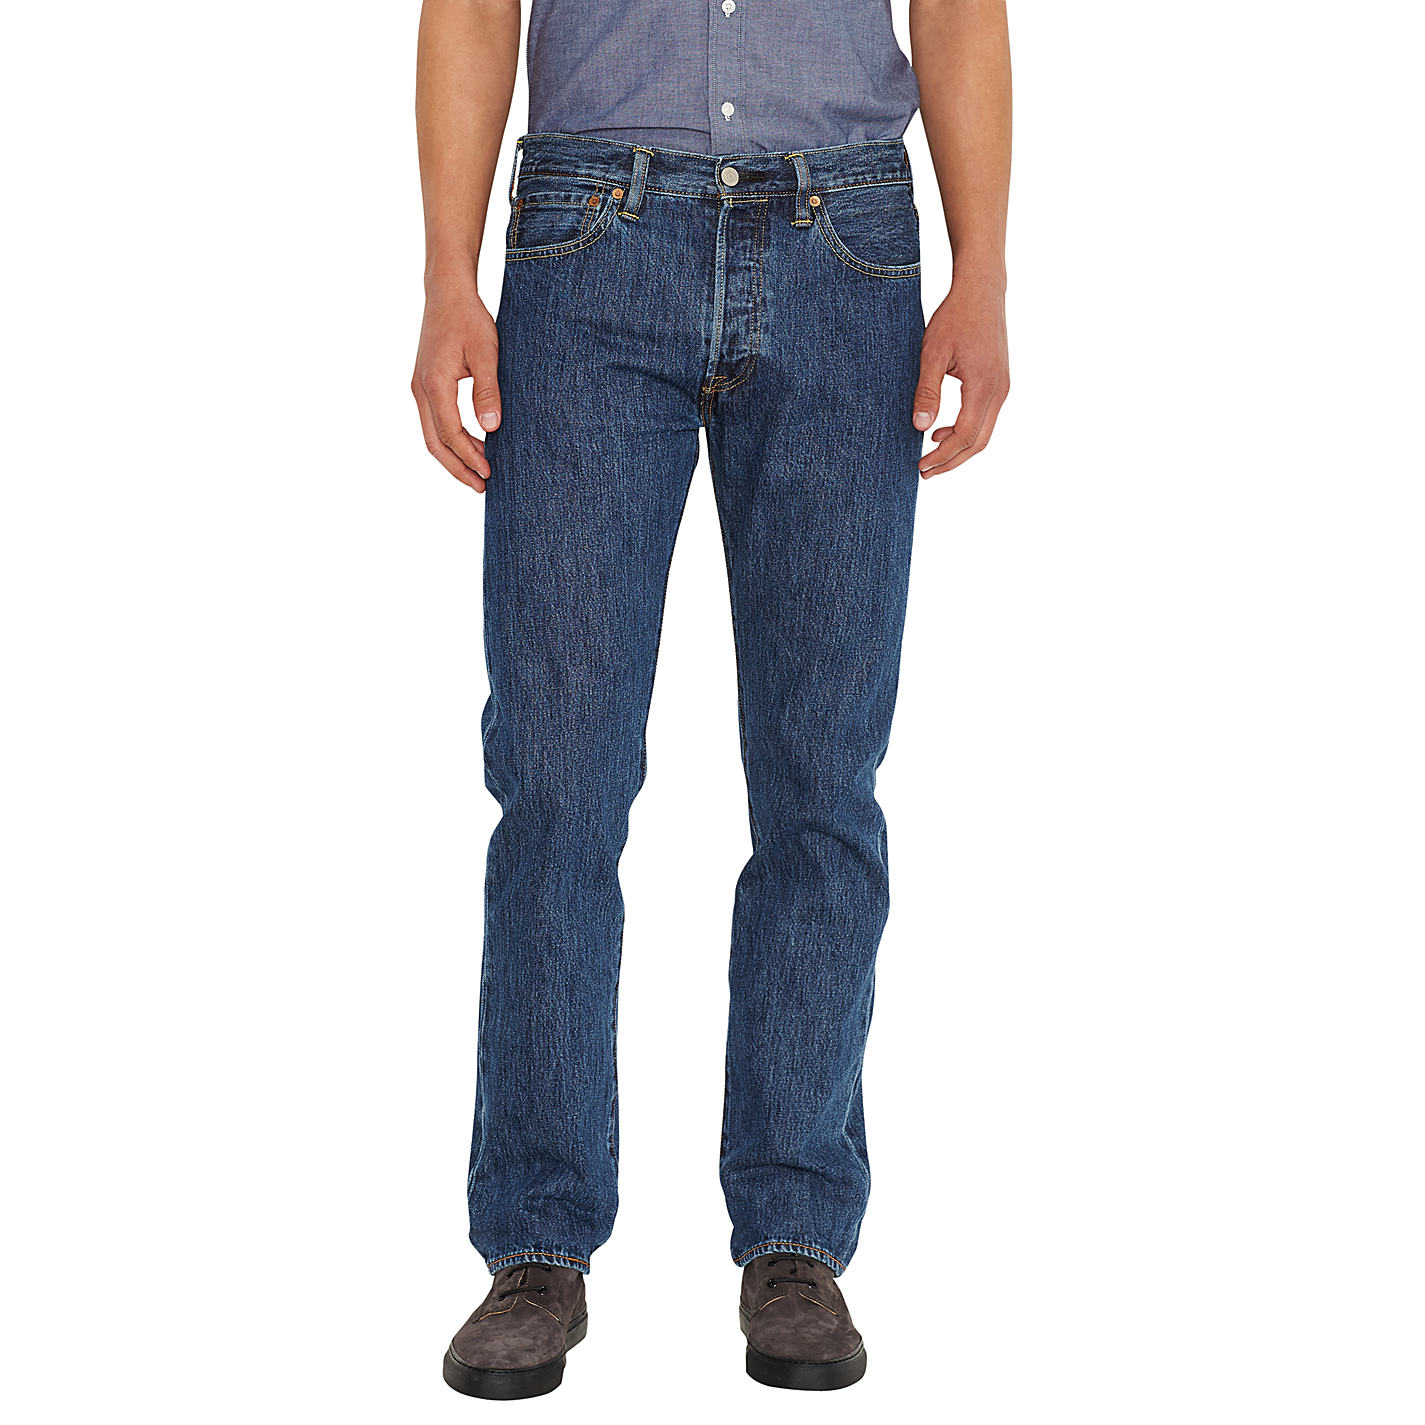 Levis clothing online